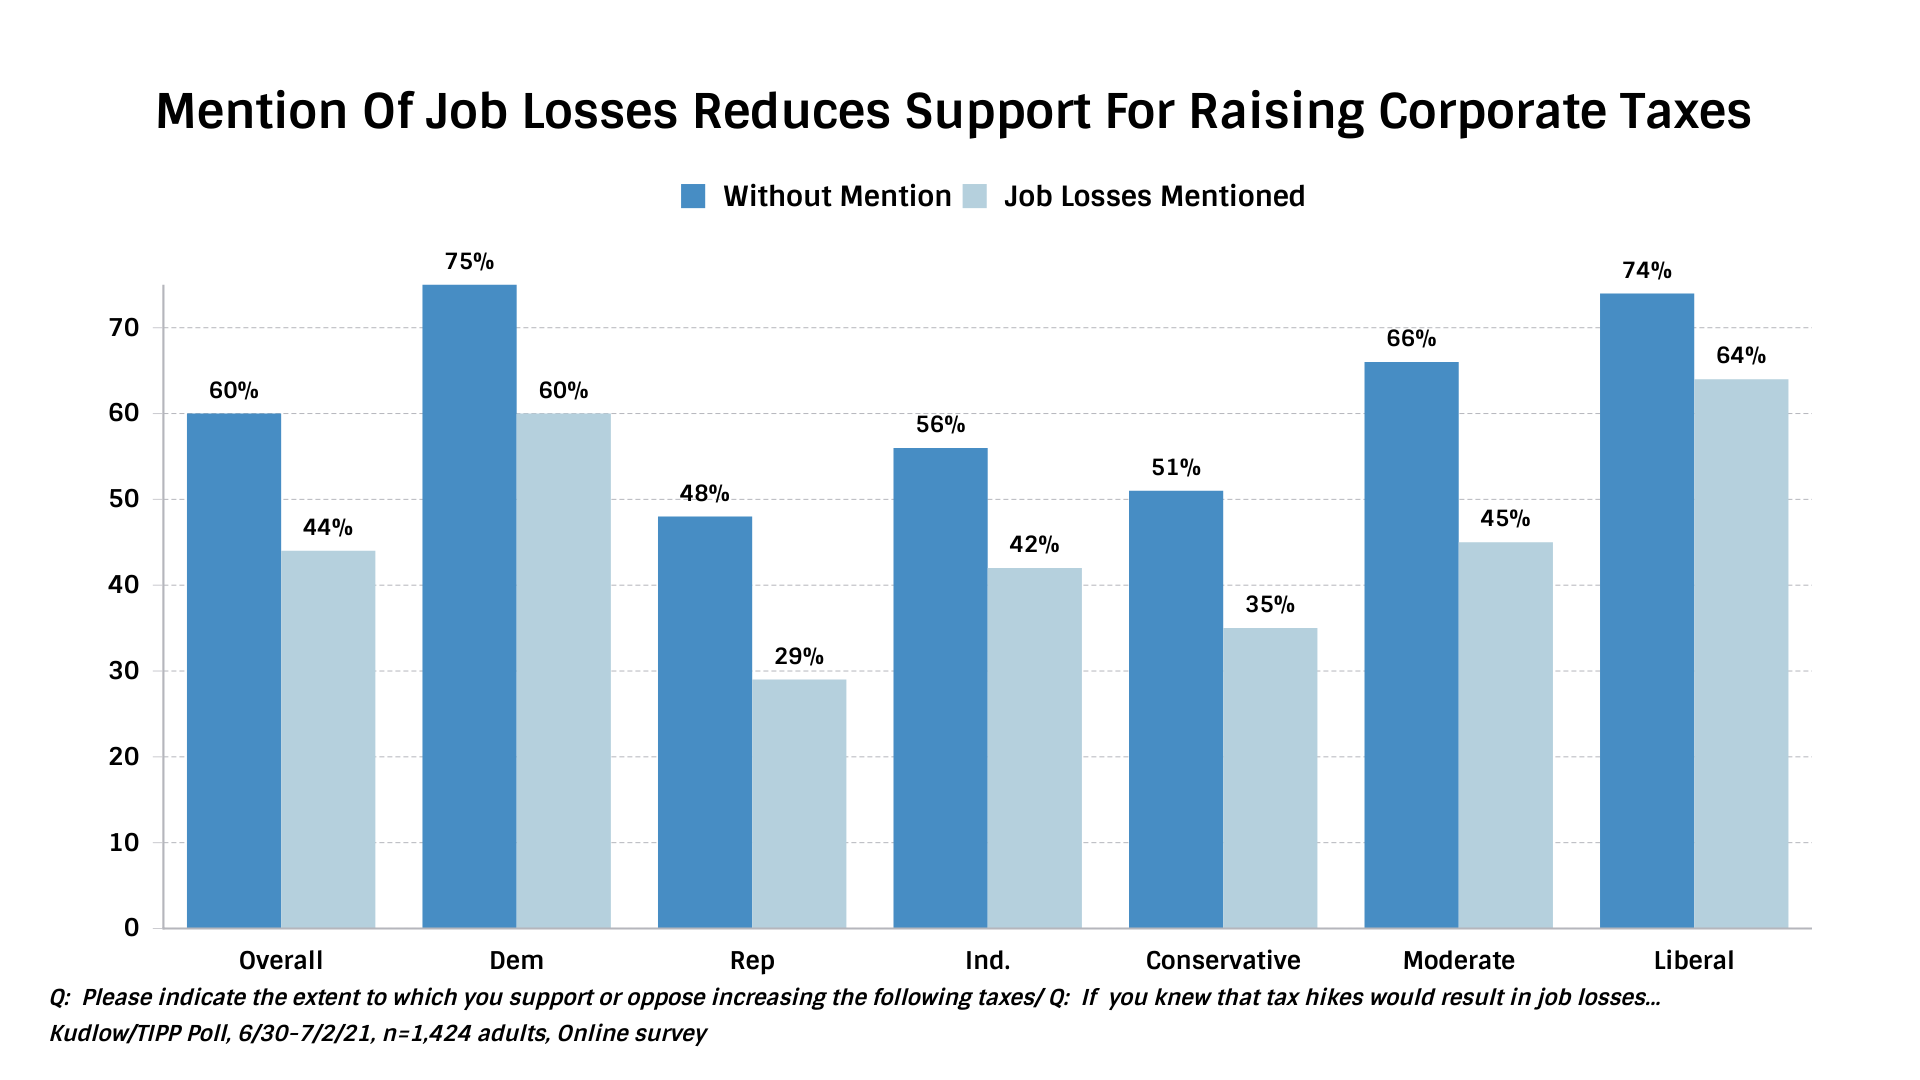 IBD/TIPP Mention Of Job Losses Reducing Support For Raising Taxes